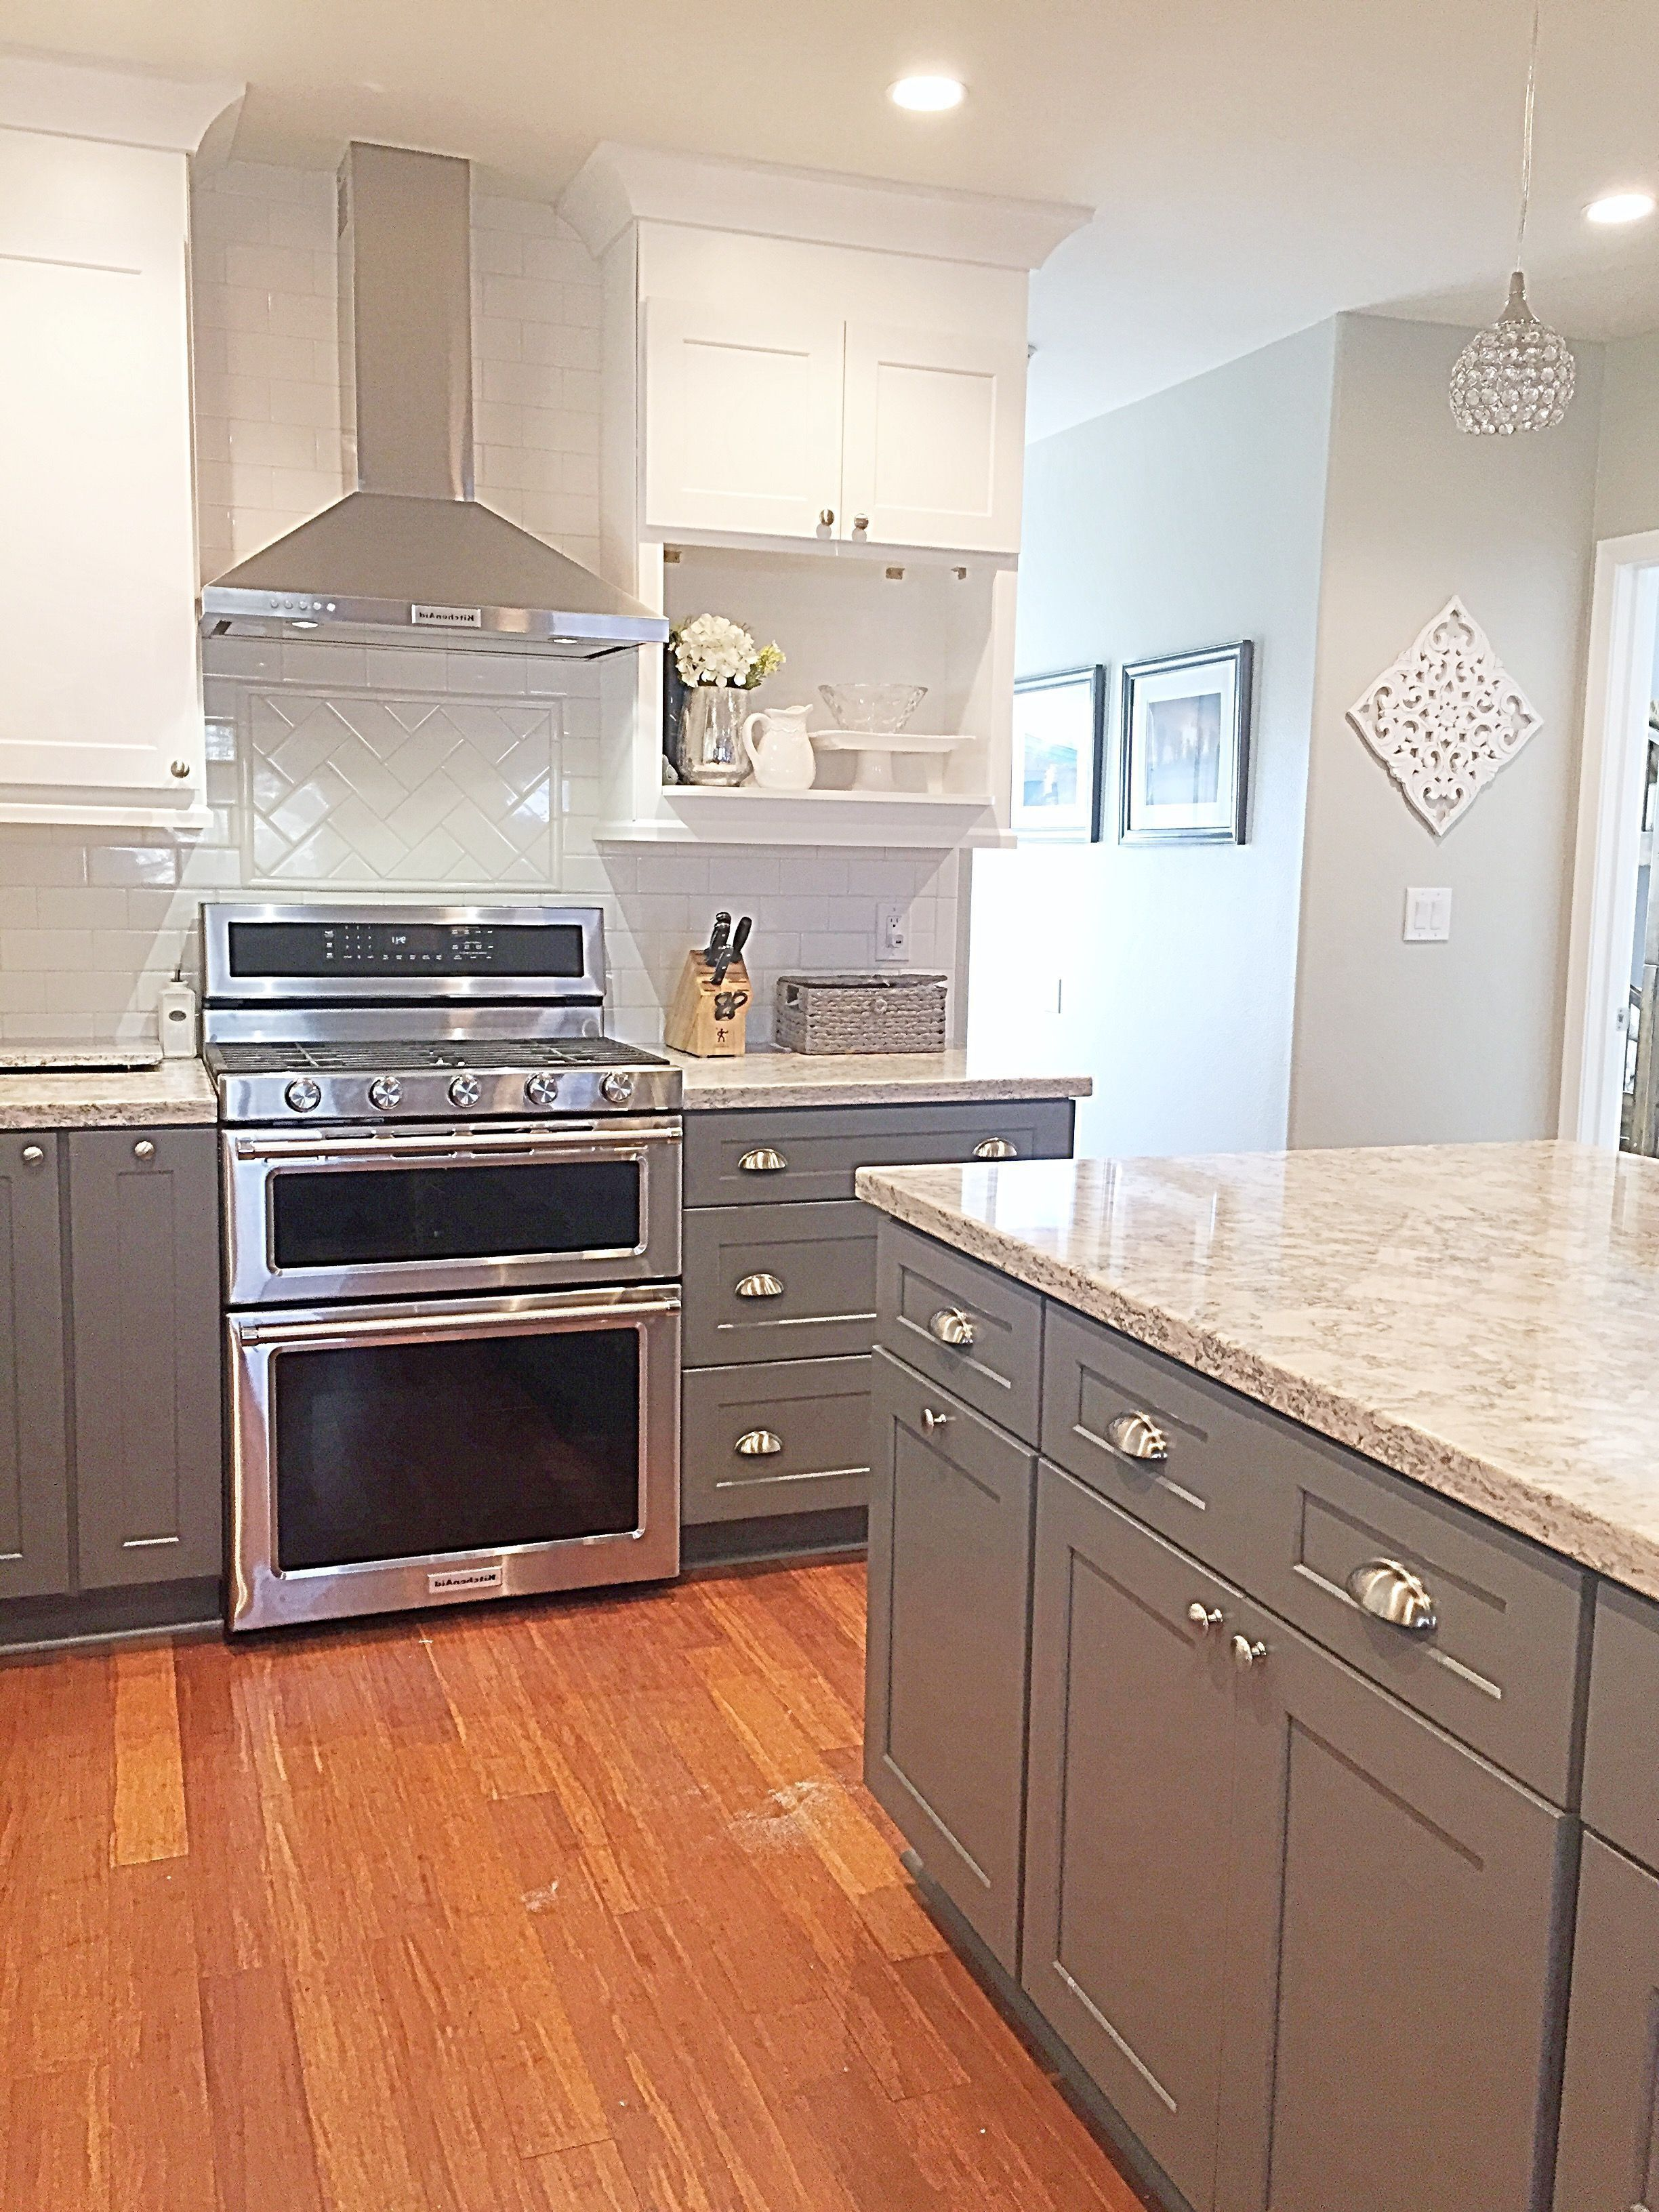 41 Most Popular Two Tone Kitchen Cabinets For 2018 These Minimalist Kitchen Suggestions Are E Two Tone Kitchen Cabinets New Kitchen Cabinets Kitchen Design